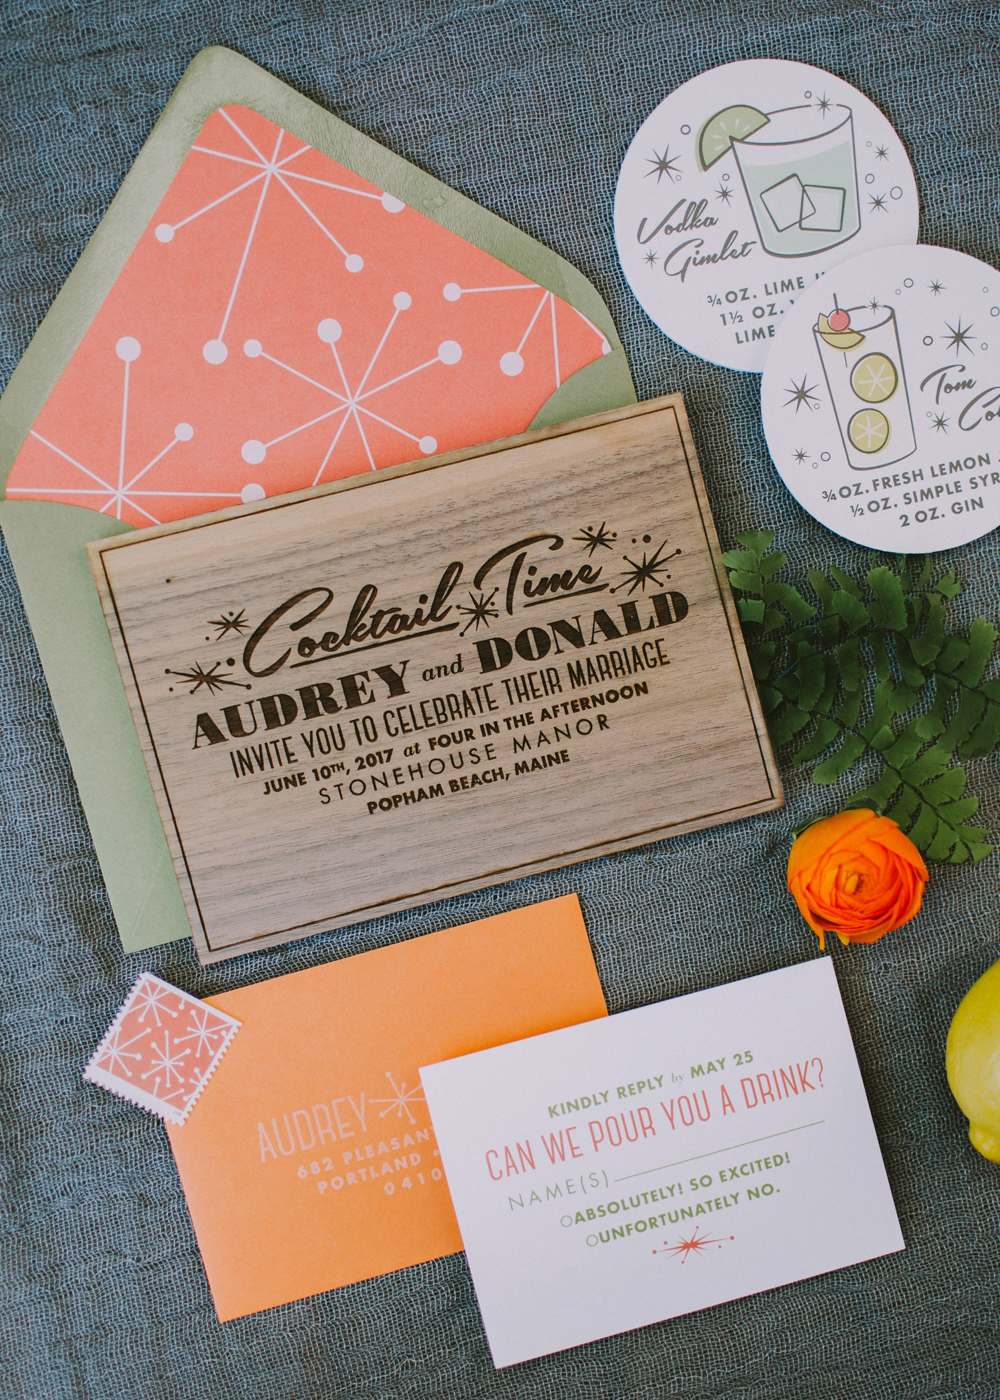 Mid-century modern custom wedding invitations